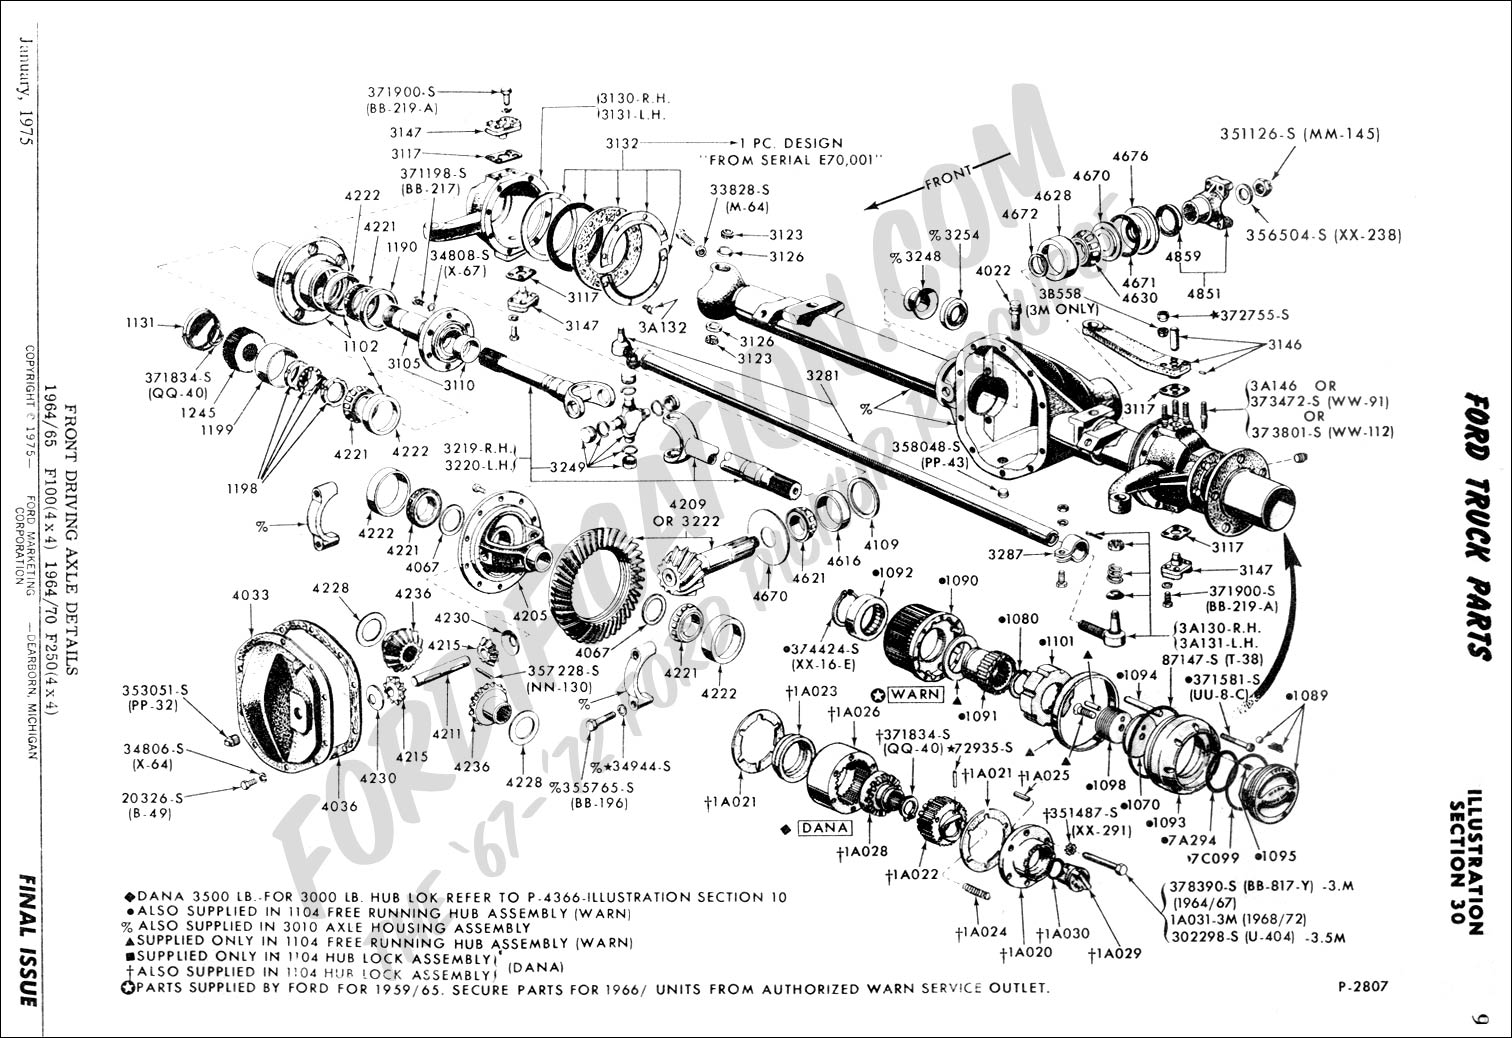 1957 thunderbird wiring diagram free image engine  1957